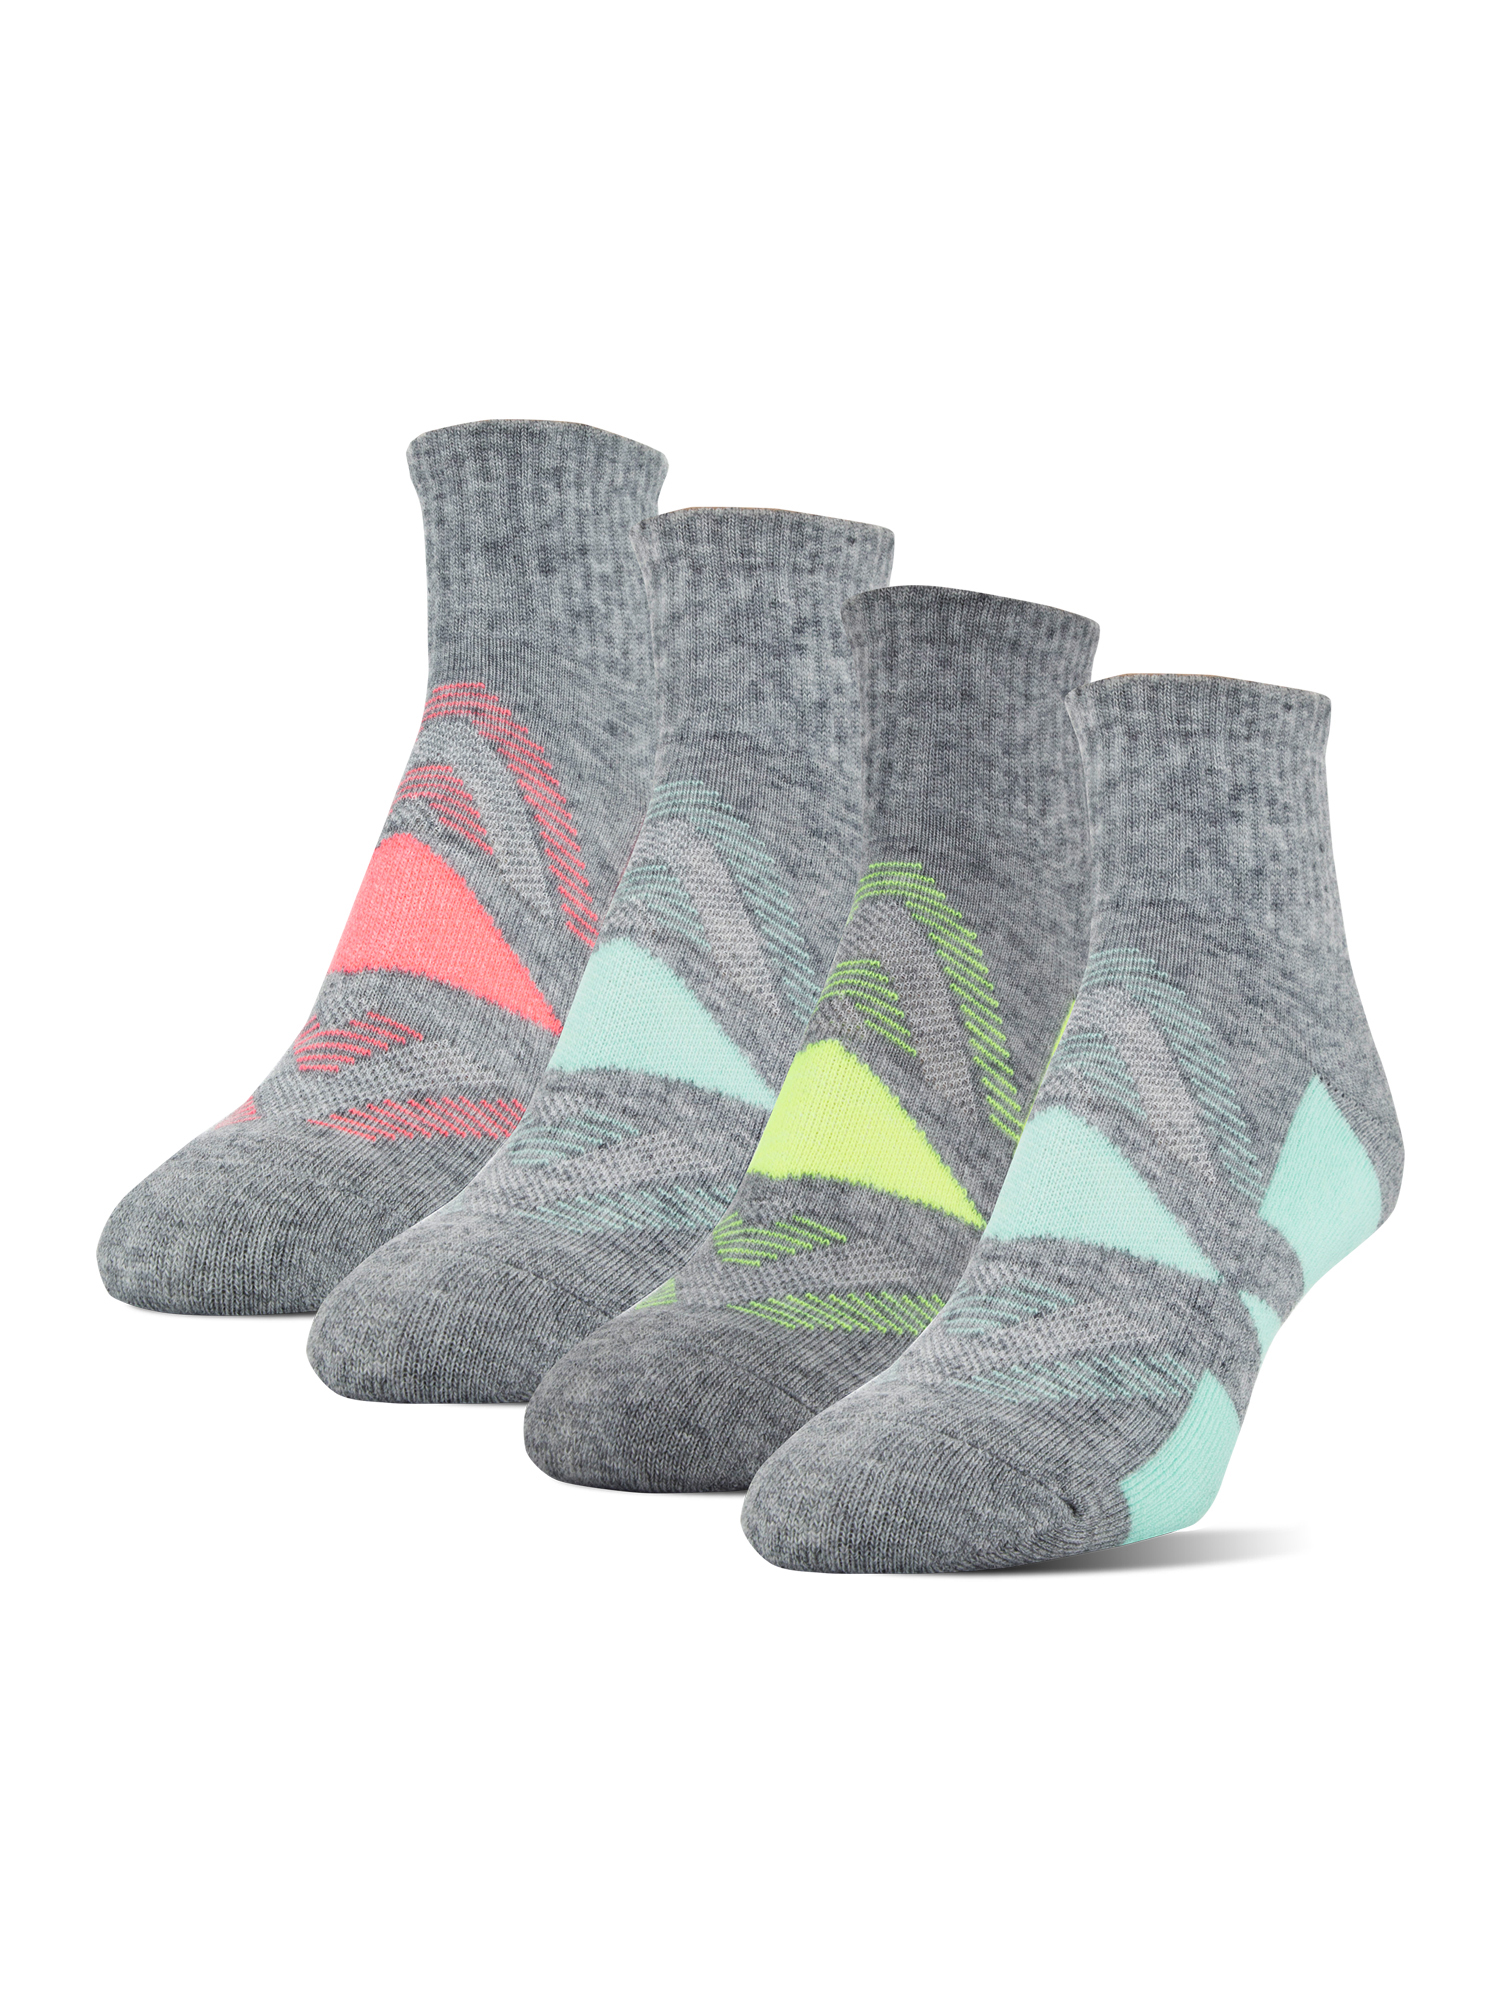 Athletic Works Women's Wool Midcushion Ankle Socks, 4 Pairs